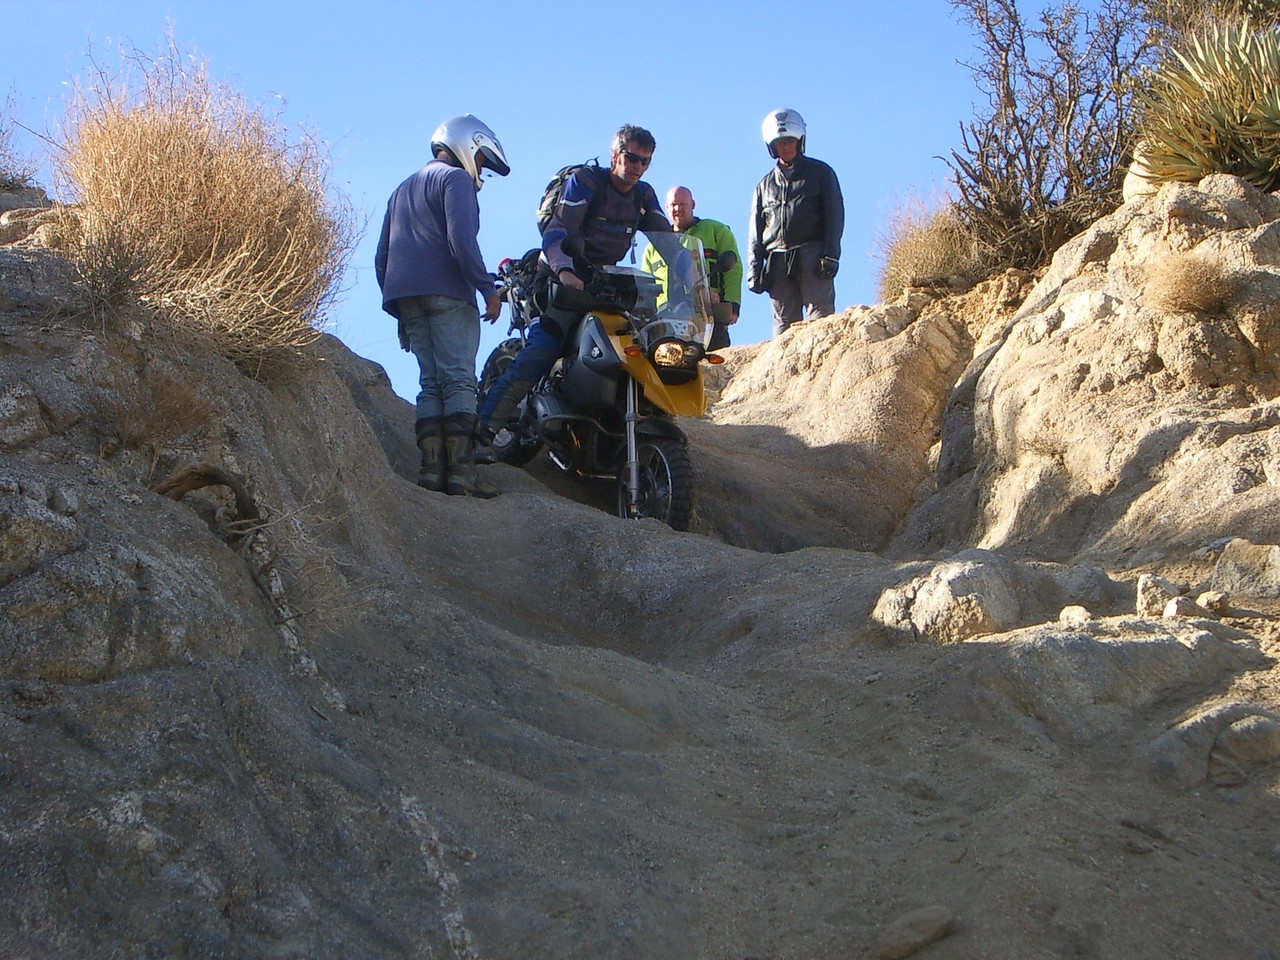 Michael, an experienced off road racer, kindly offered to take my bike down this for me... it scared the s#*t out of me.